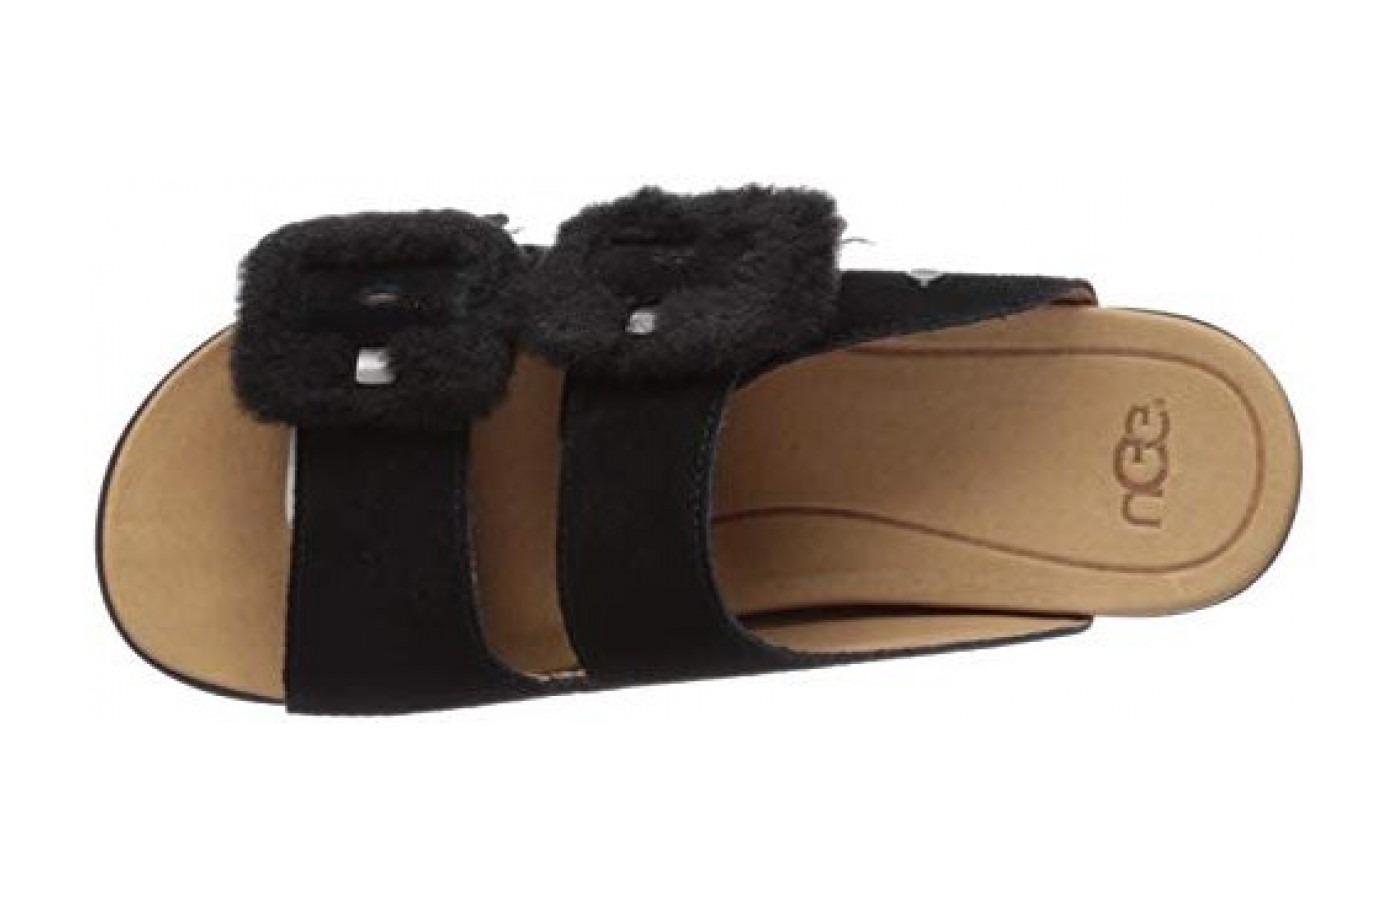 e35a464932f UGG Fluff Indio Sandal Reviewed & Rated in 2019 | WalkJogRun